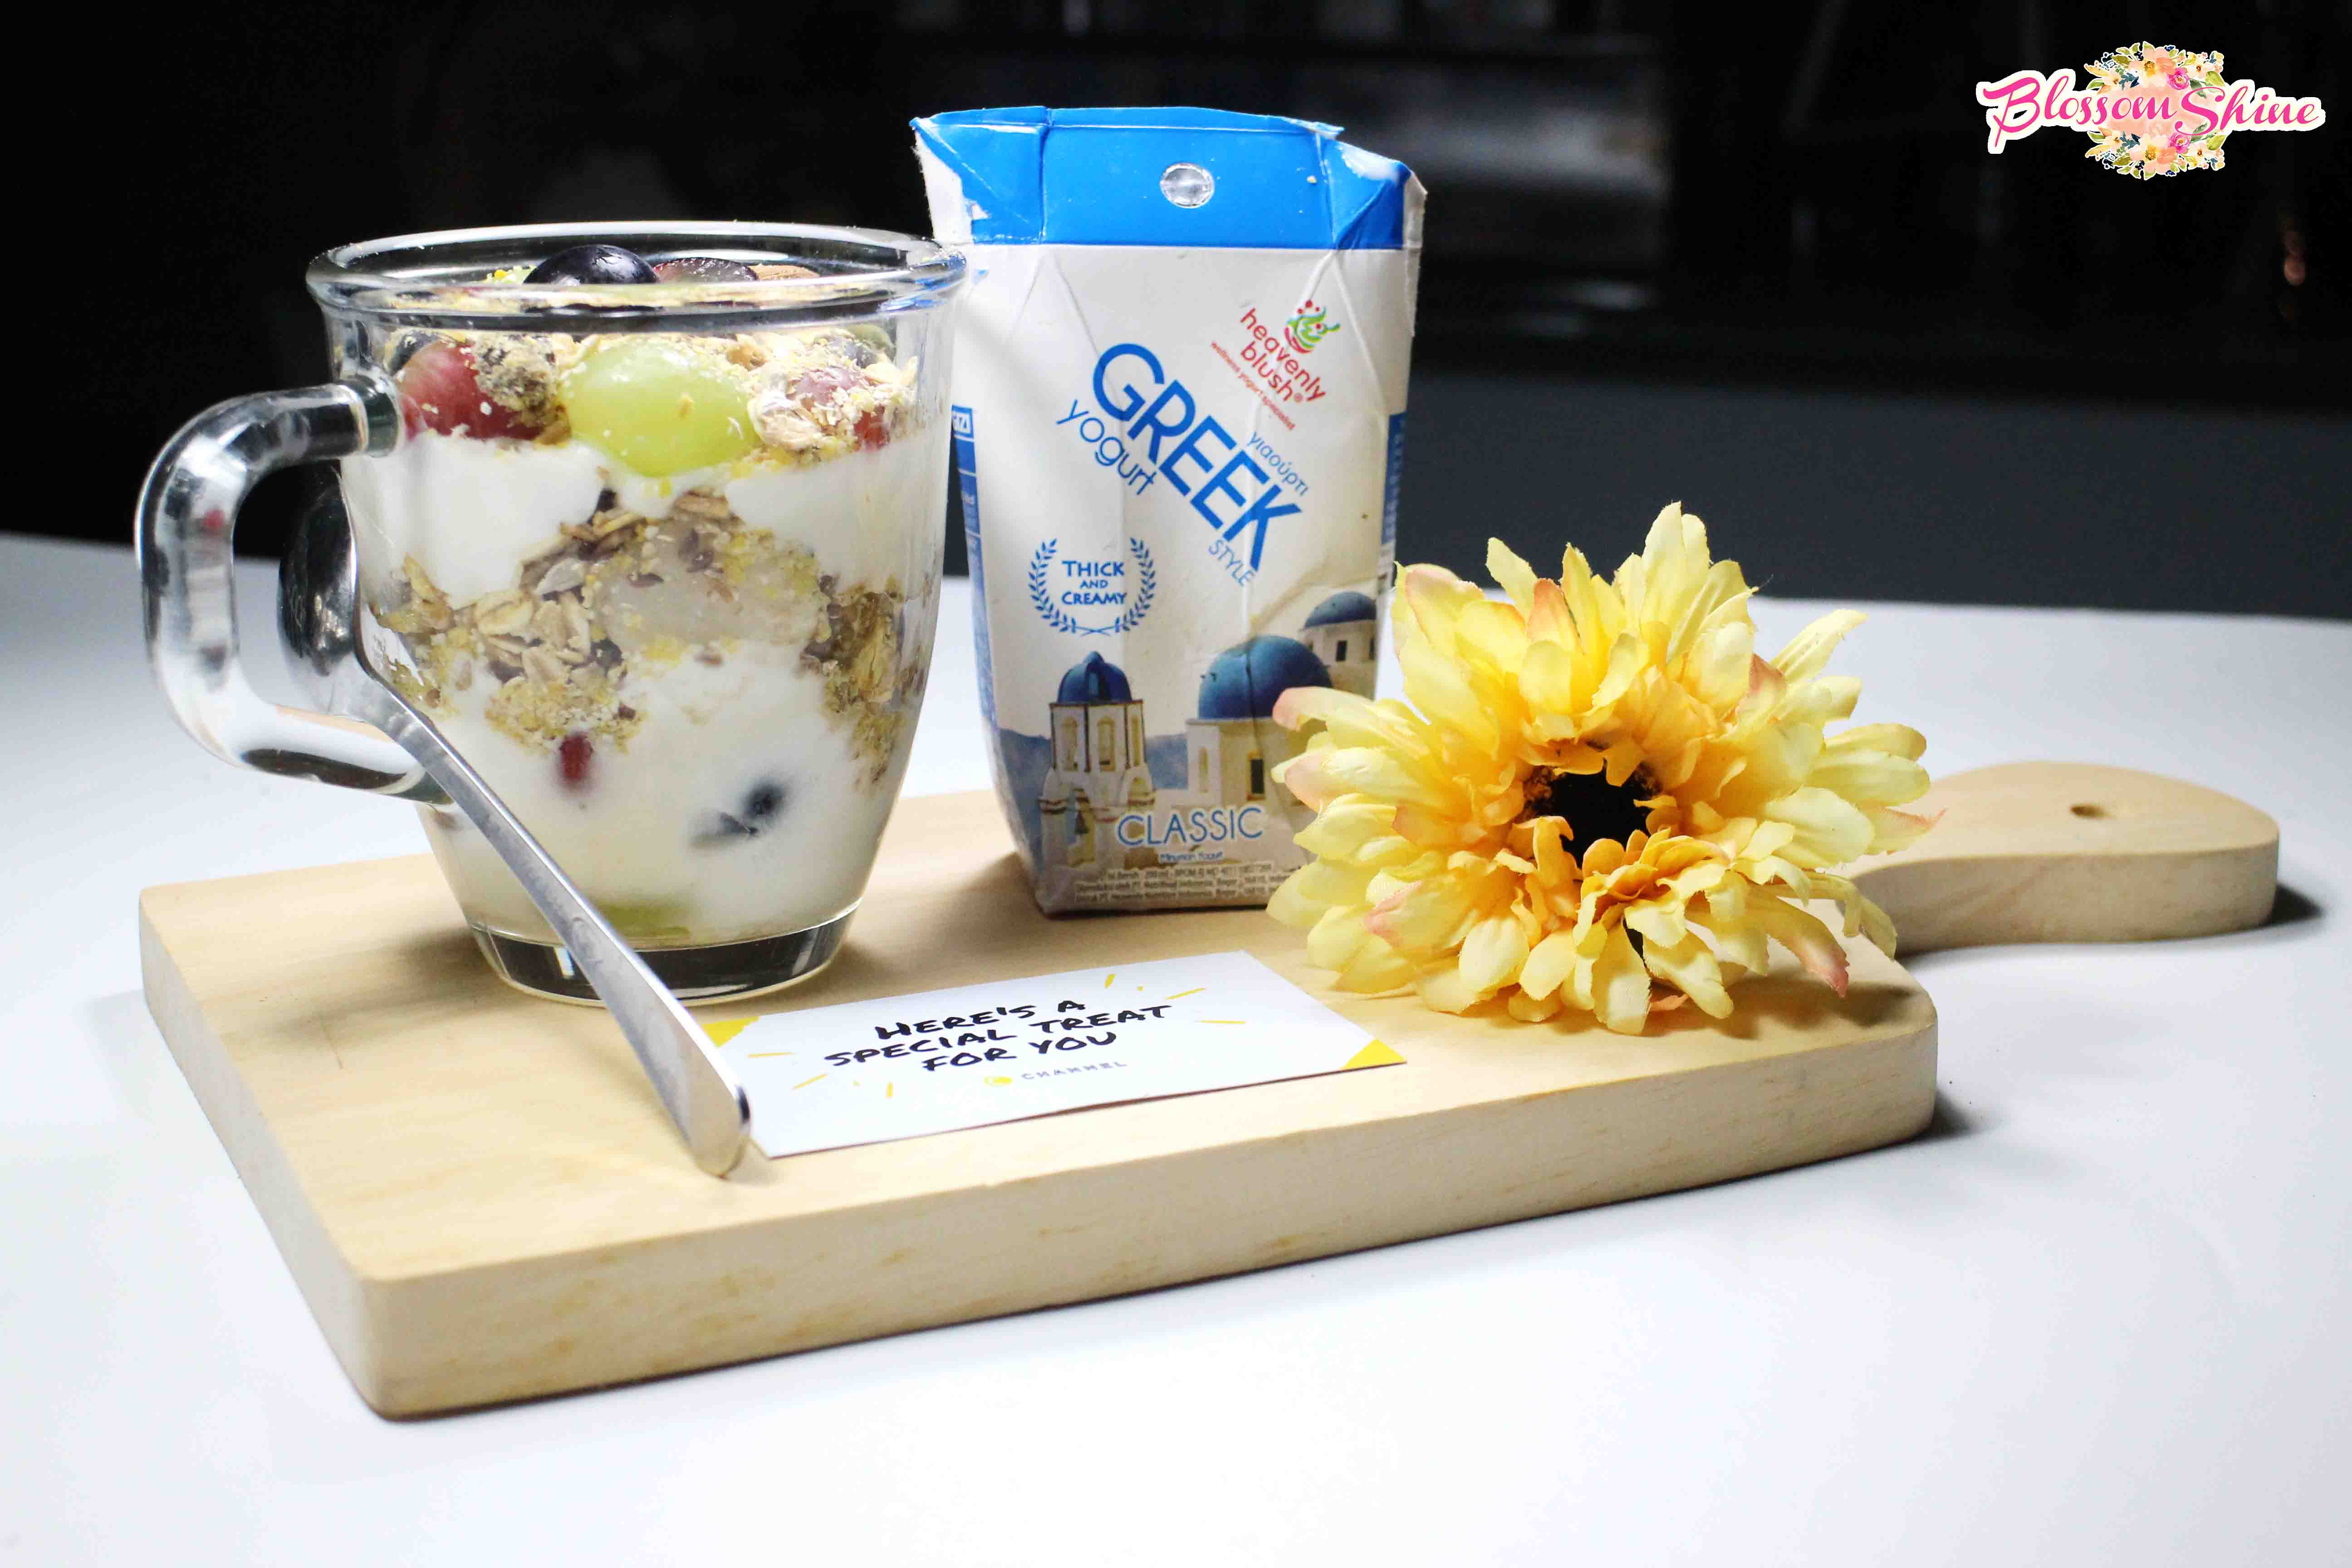 Manfaat Yogurt Untuk Kecantikan with Heavenly Blush Greek Yogurt